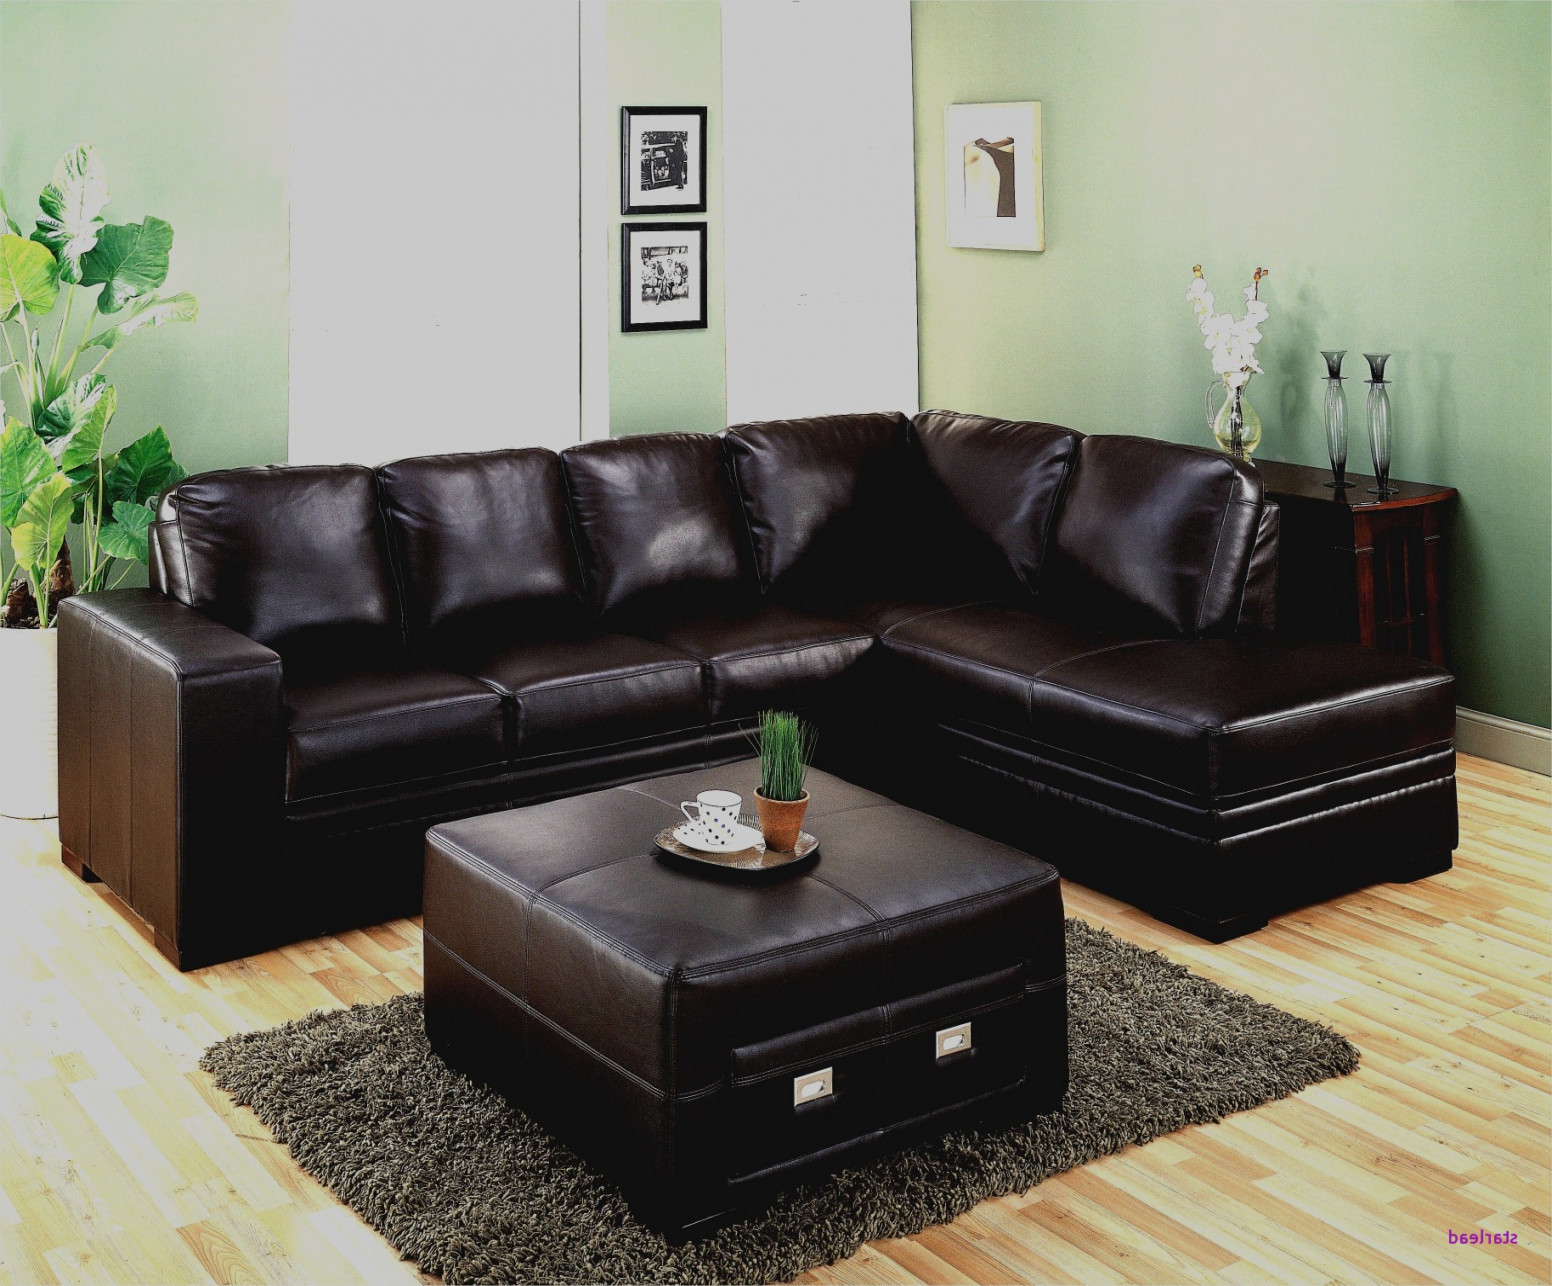 Couches for Dark Hardwood Floors Of Awesome 30 sofa Sets for Living Room Fresh Home Design Ideas Pertaining to Modern Leather sofa Set Awesome Black Leather sofa Set Design Wicker Outdoor sofa 0d Patio Chairs